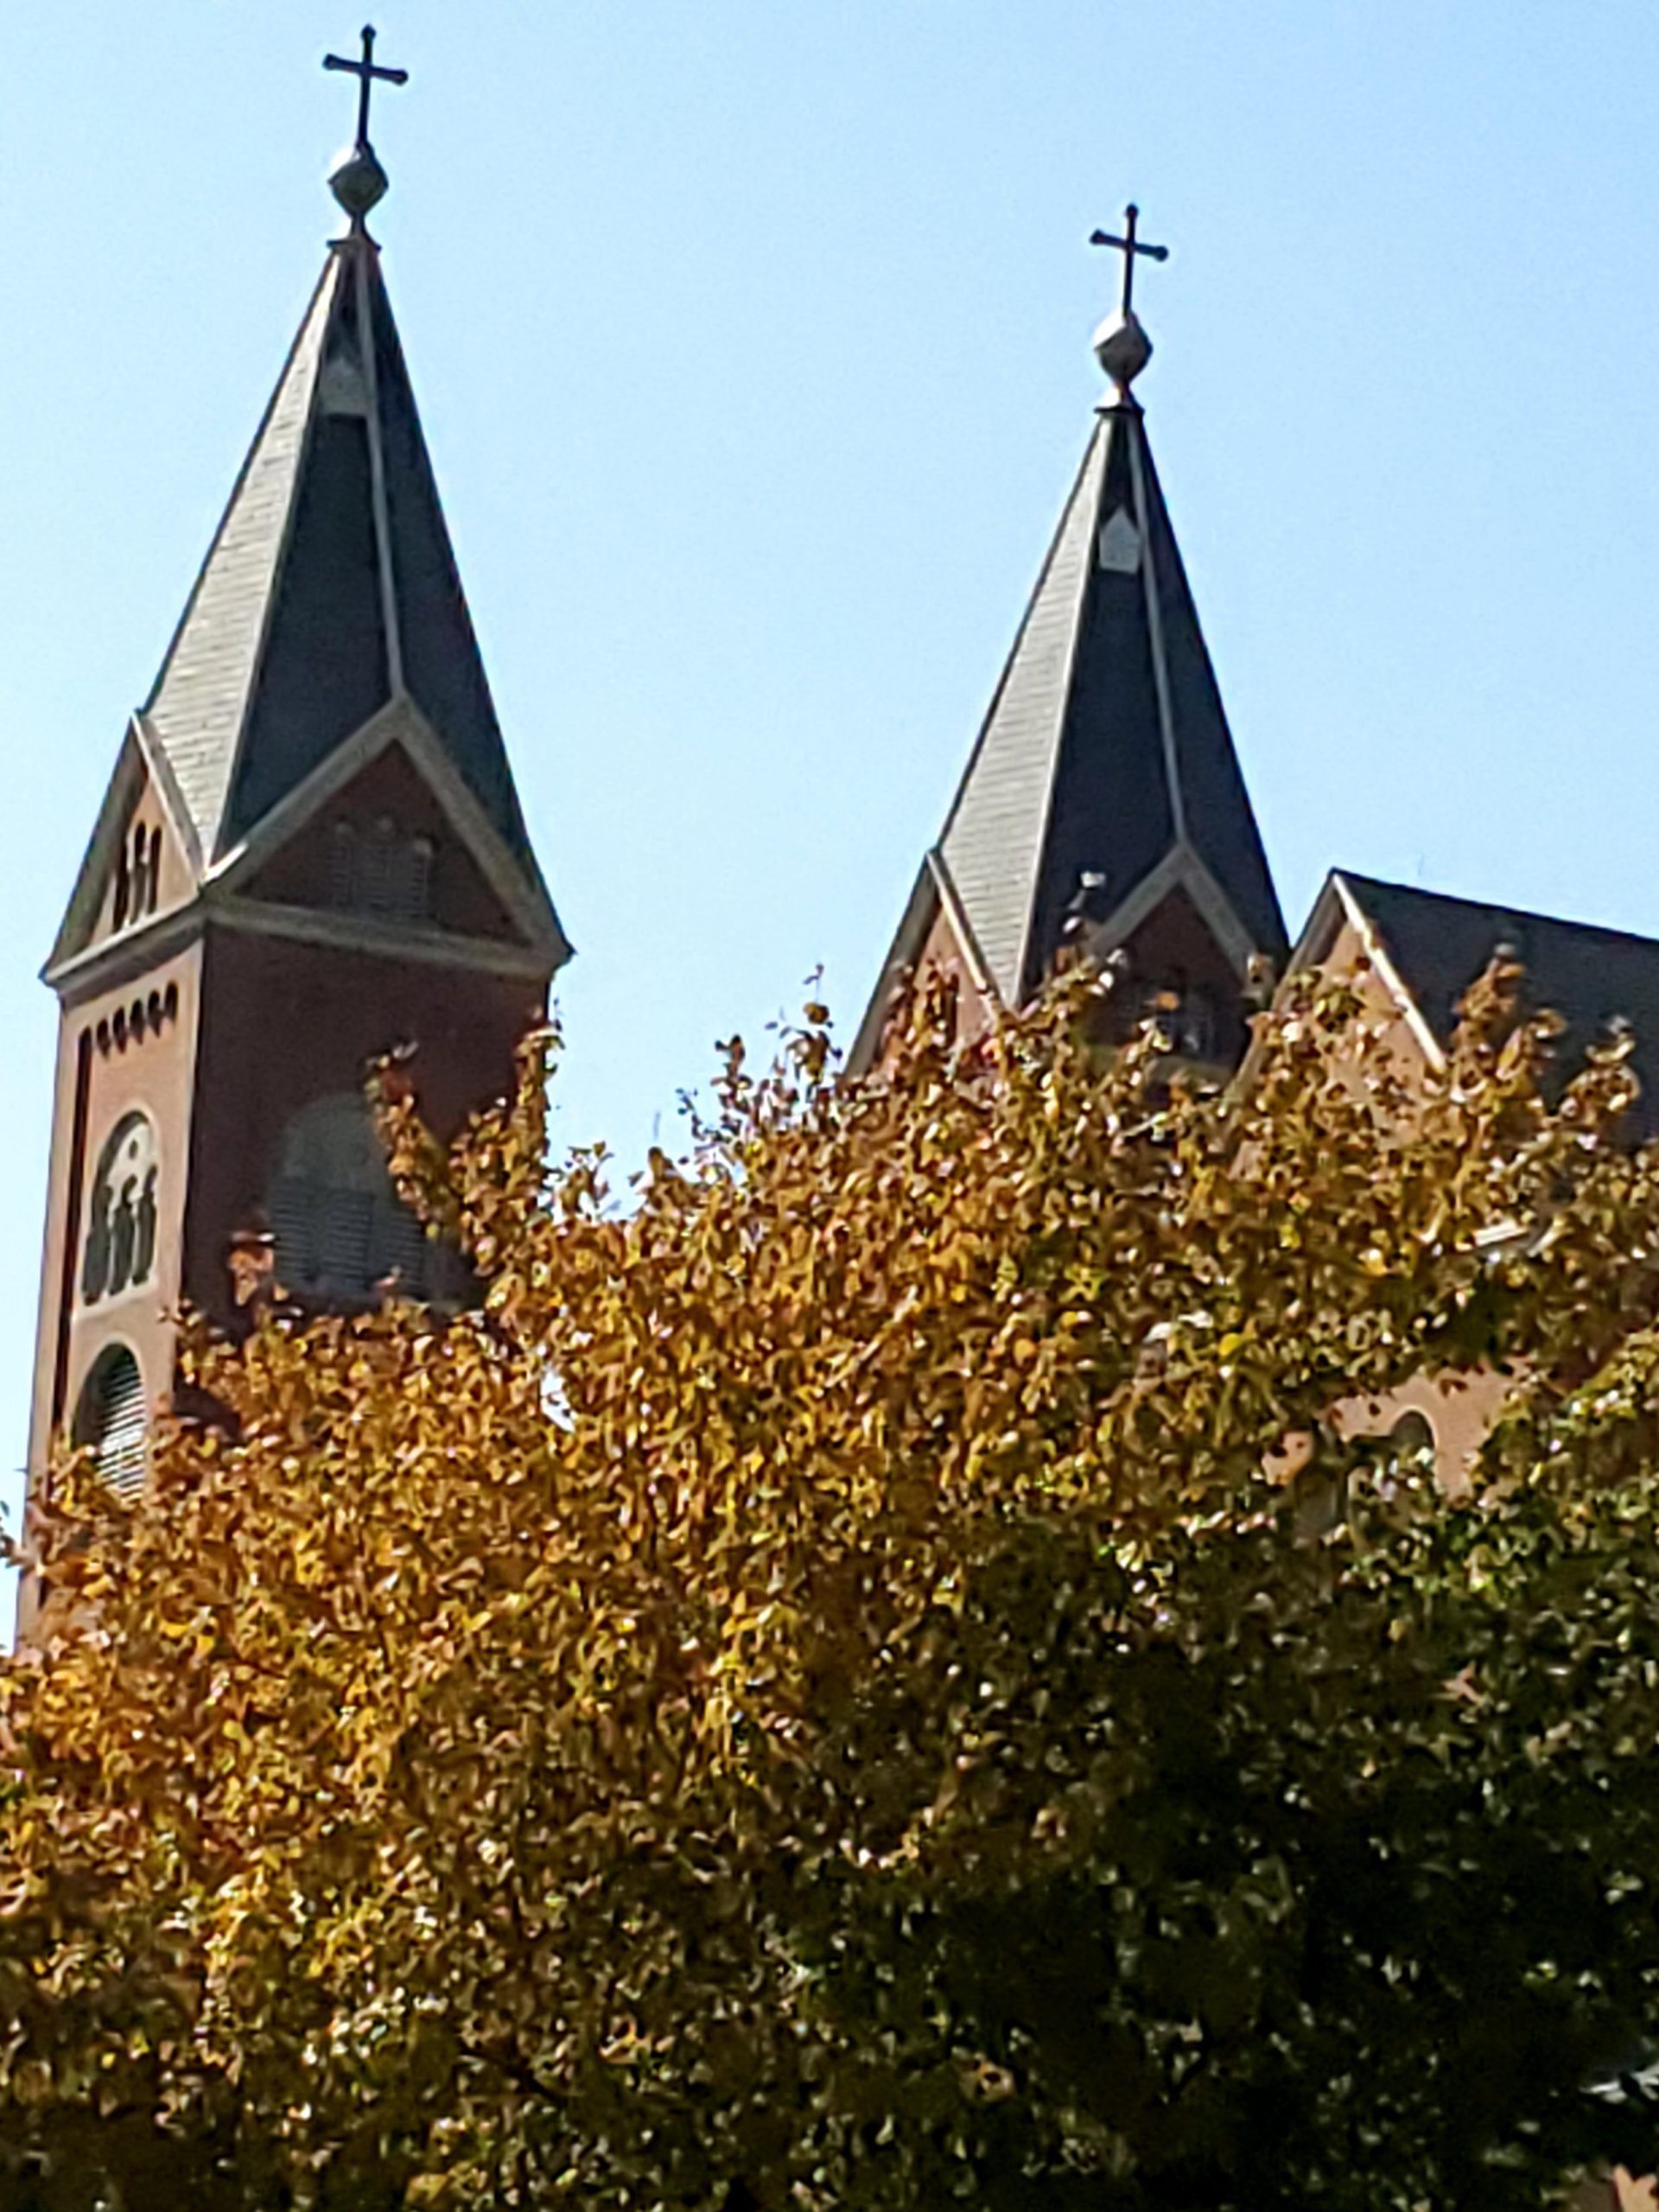 "JEANNINE WYATT, FAITH AND HOPE....ALWAYS WITH ME, ALWAYS ENDURING: I submitted a recent photograph I took following the funeral of a friend who died of leukemia. This friend was a Benedictine monk. As I left the abbey, I looked to my left and noticed the twin steeples of the nearby local parish church. I pulled over and sat in my car and gazed at the steeples and crosses against the cerulean blue sky. I could not help but think of my own cancer, the MDS that fatigues me with the anemia I have. I was very tired that afternoon. But my thoughts as I looked at the crosses atop the twin steeples were of ""Faith and Hope…. Always With Me, Always Enduring""."